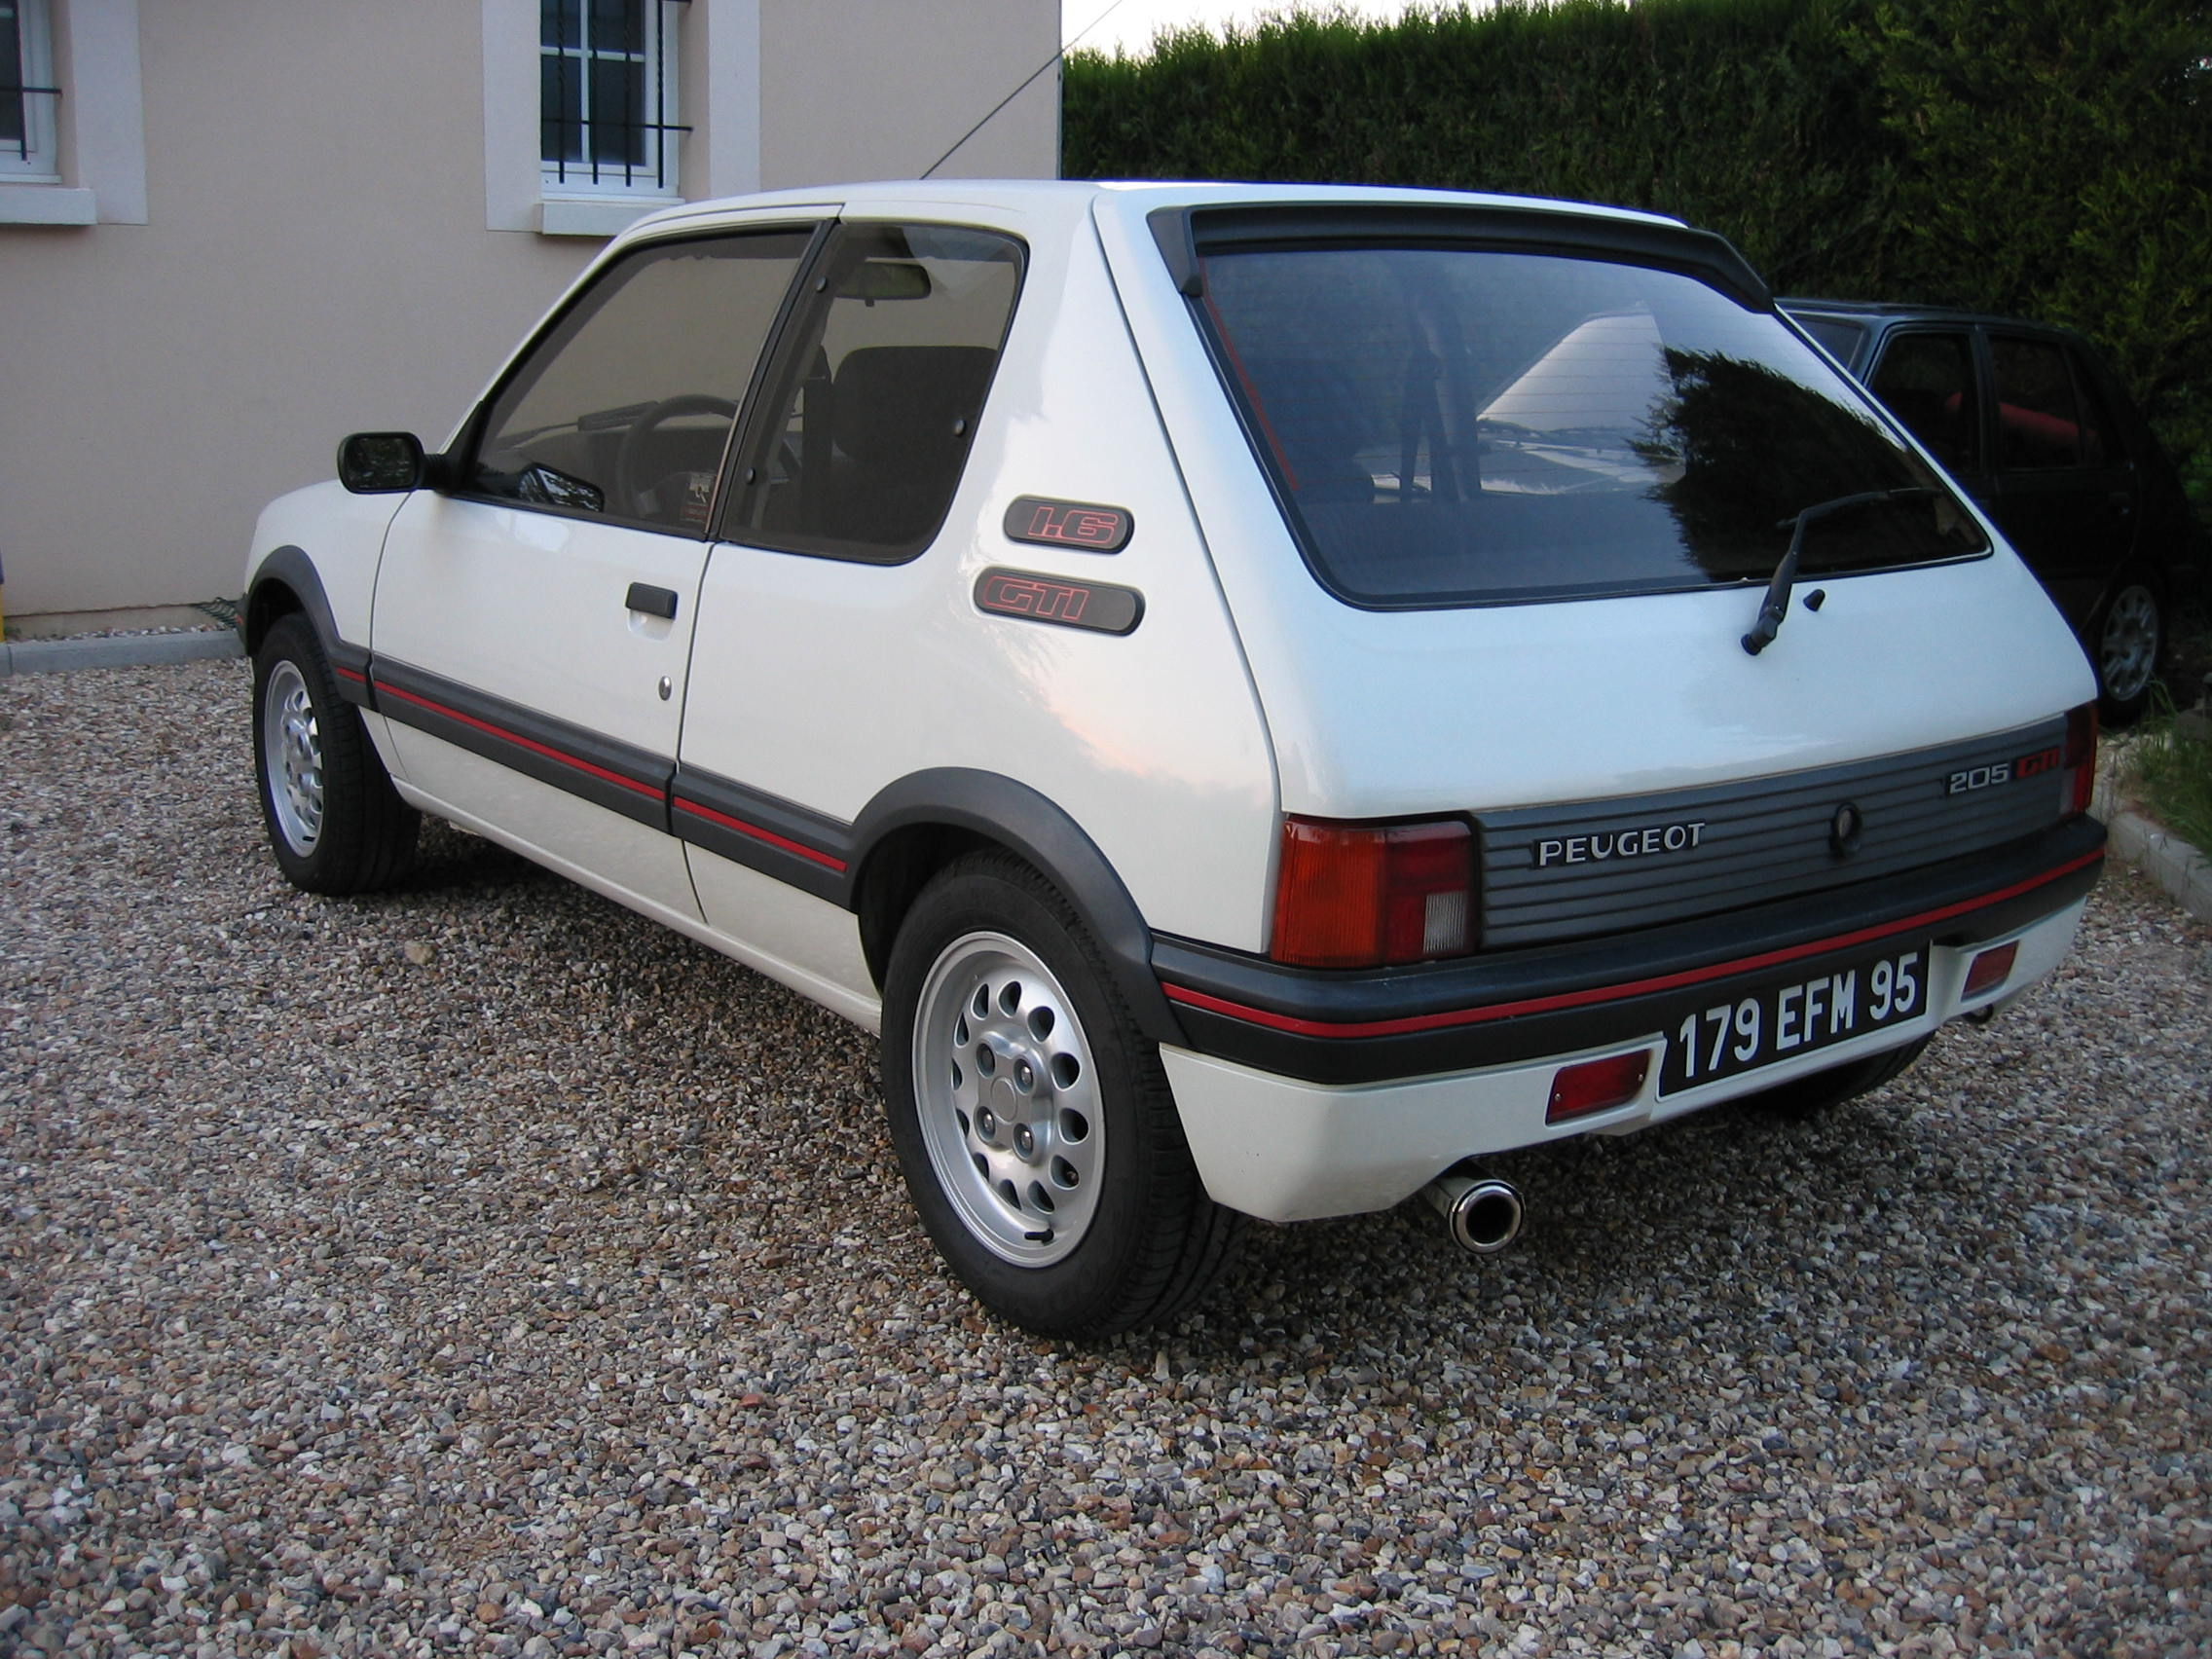 205 gti 1 6 115ch 1986 super 5 gt turbo phase 1 1986 page 6 auto titre. Black Bedroom Furniture Sets. Home Design Ideas